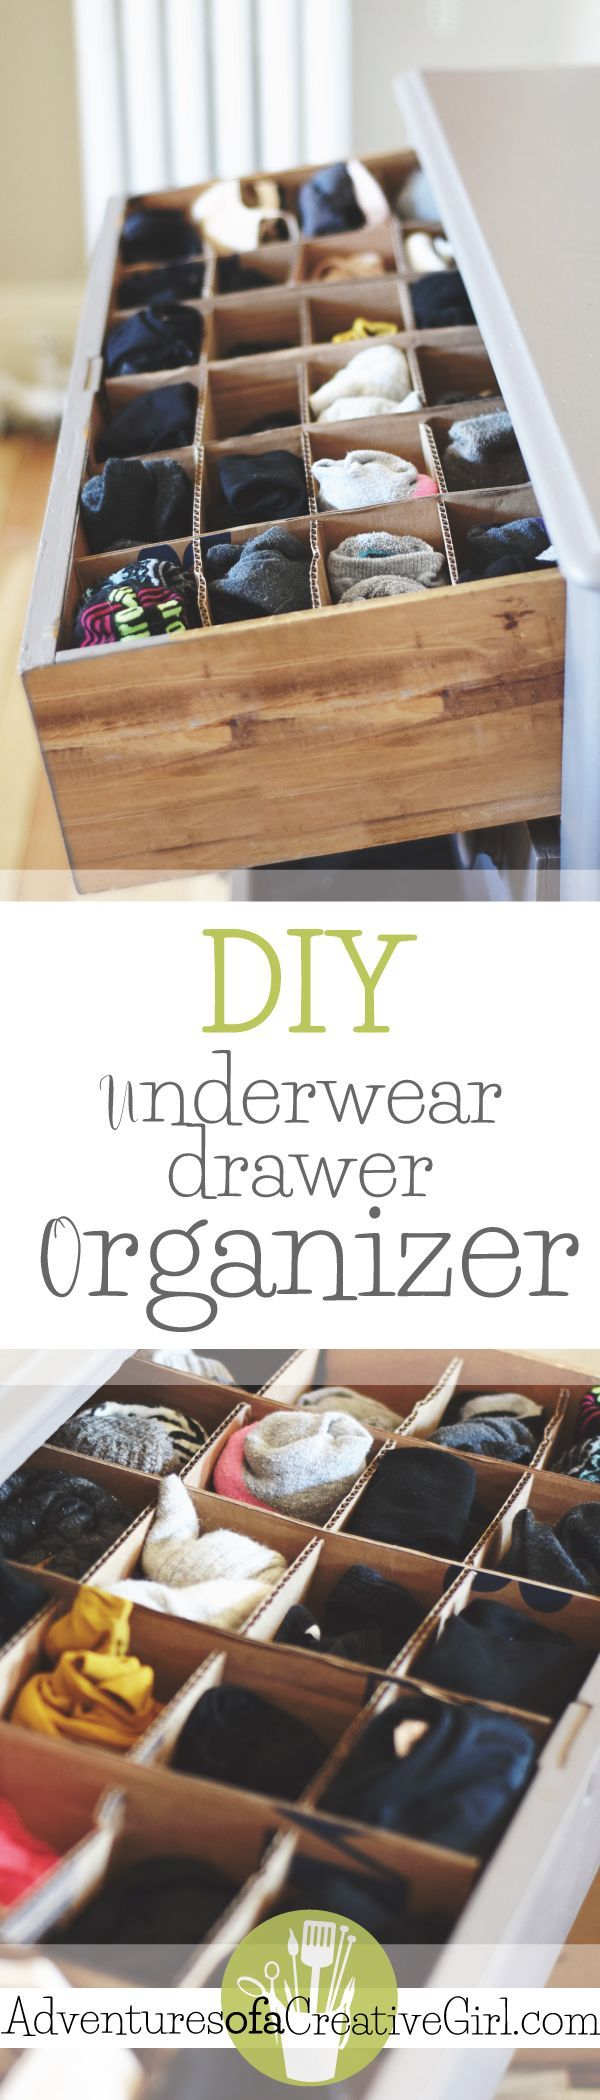 Underwear drawer organizer diy drawer organisers underwear and learn how to make your own underwear drawer organizer for free with materials you have around the house step by step instructions with pictures solutioingenieria Image collections